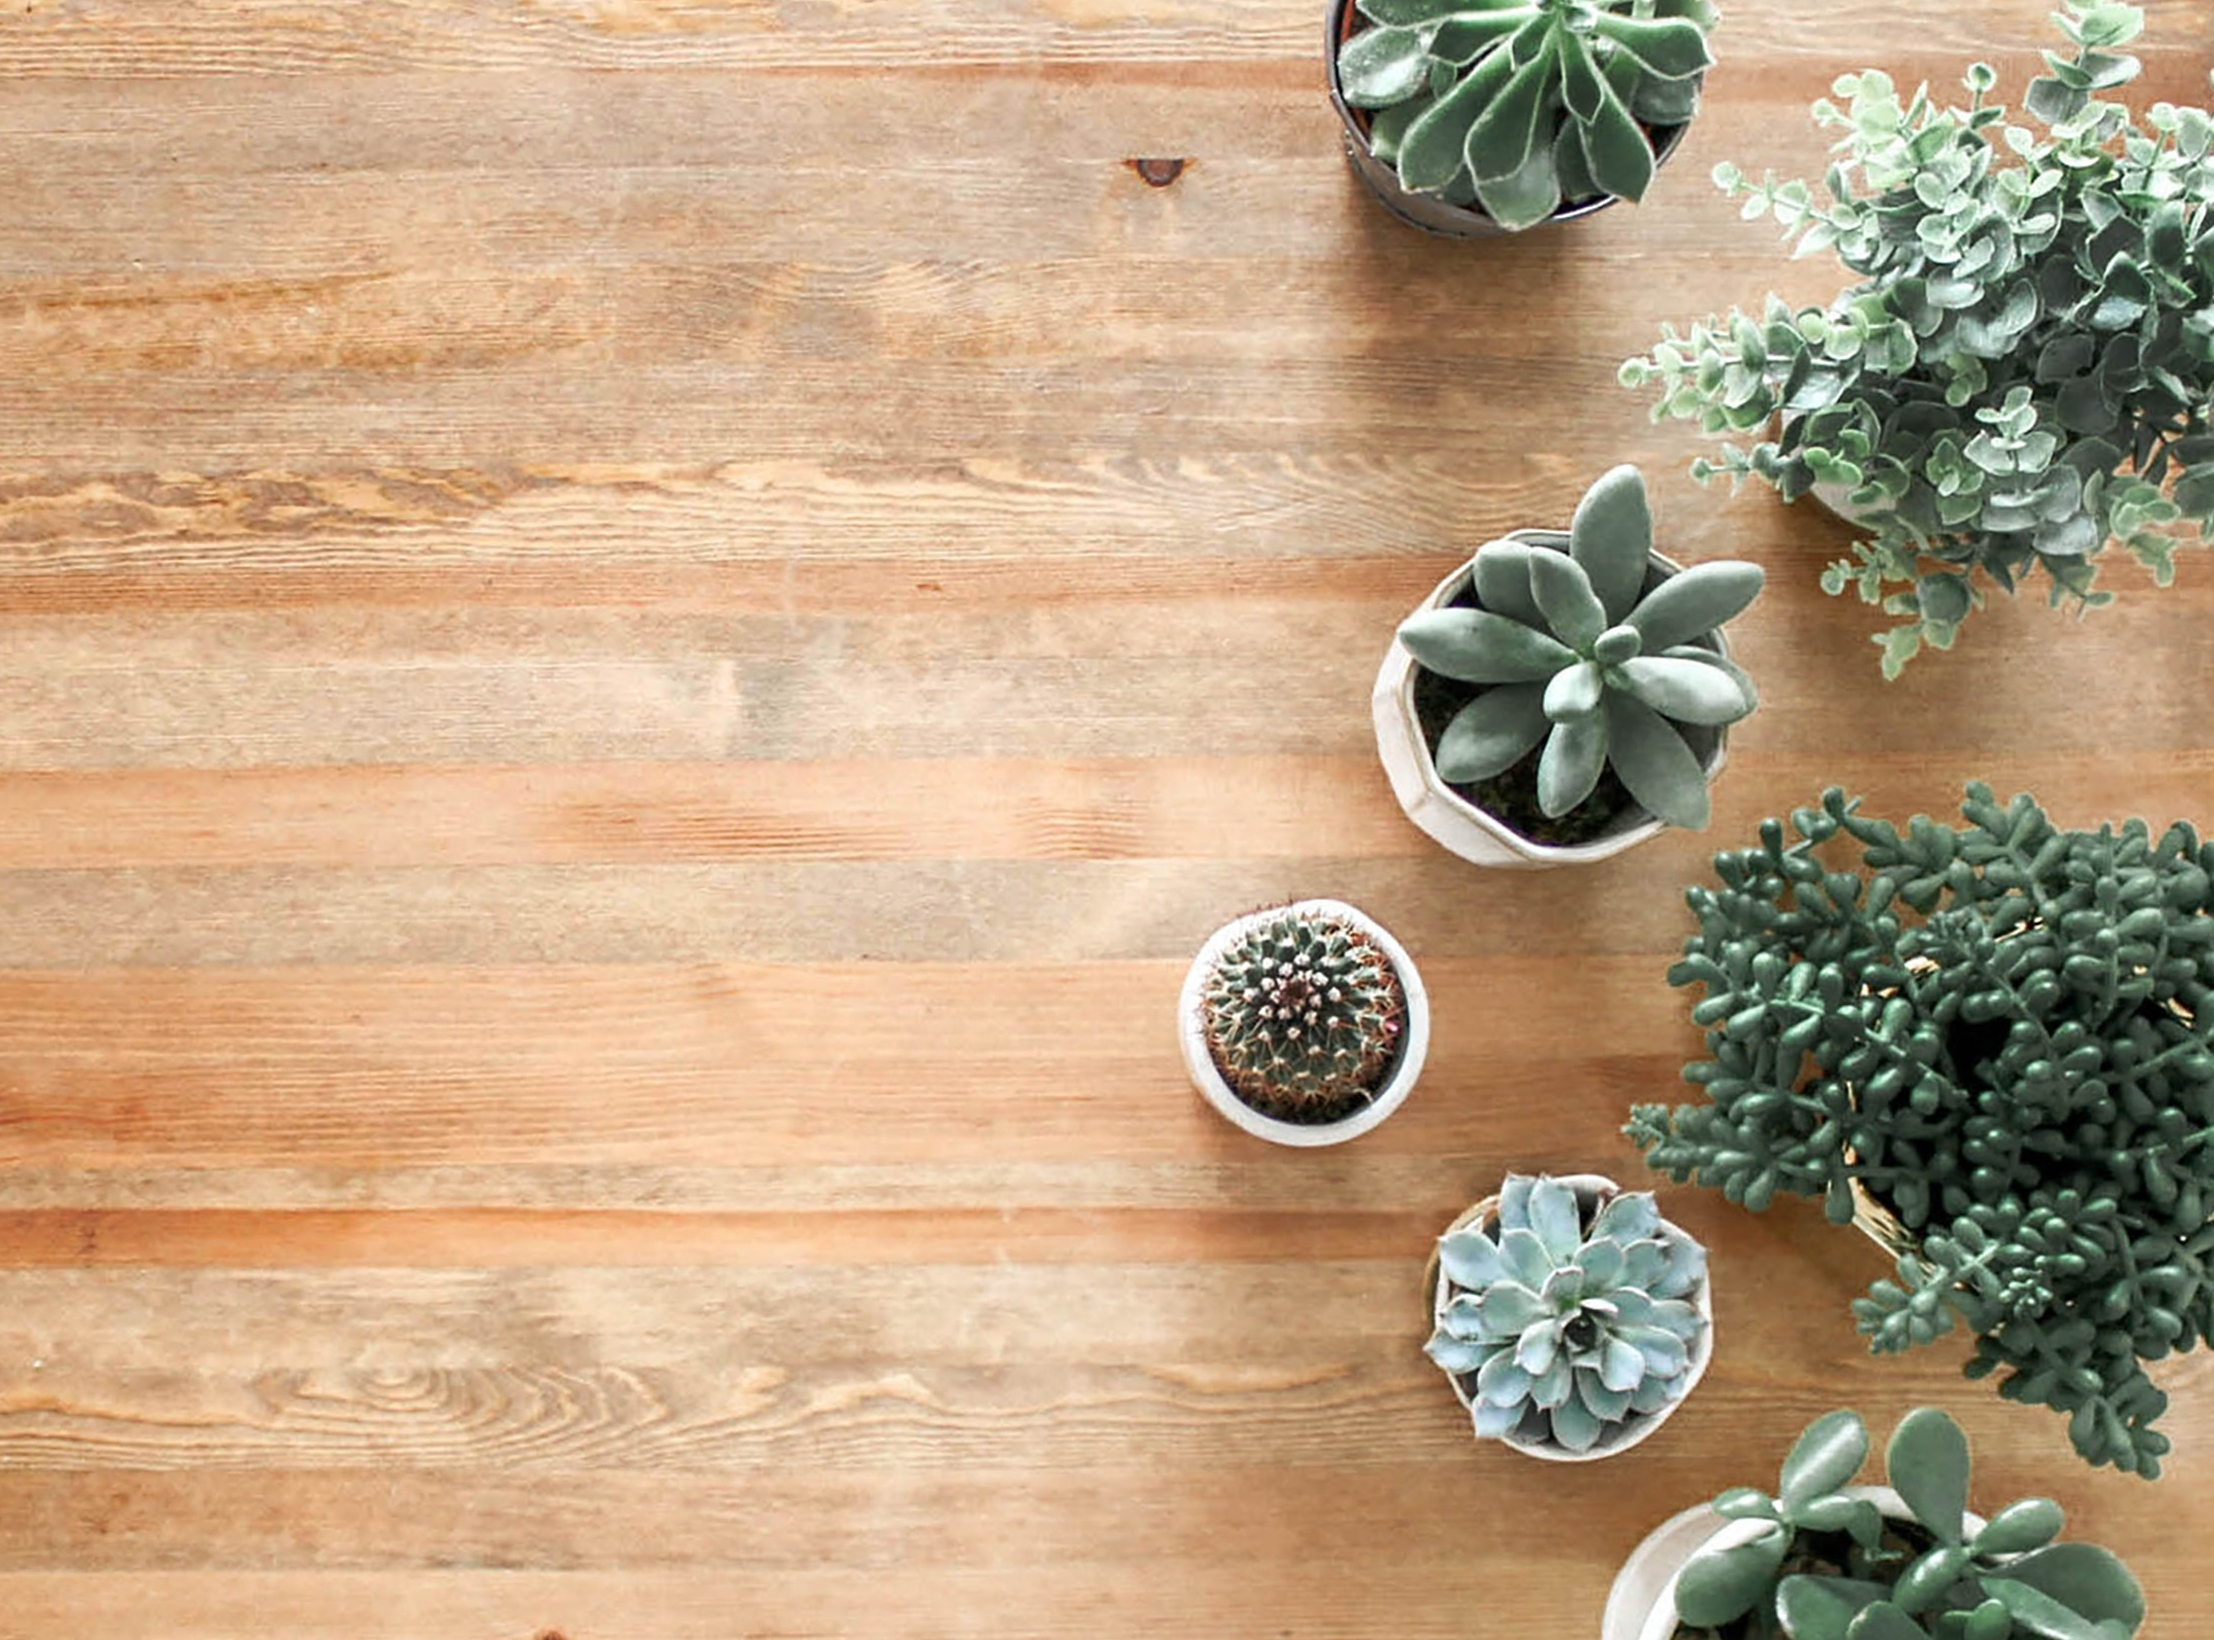 Easy Ways to Add Greenery to Your Home